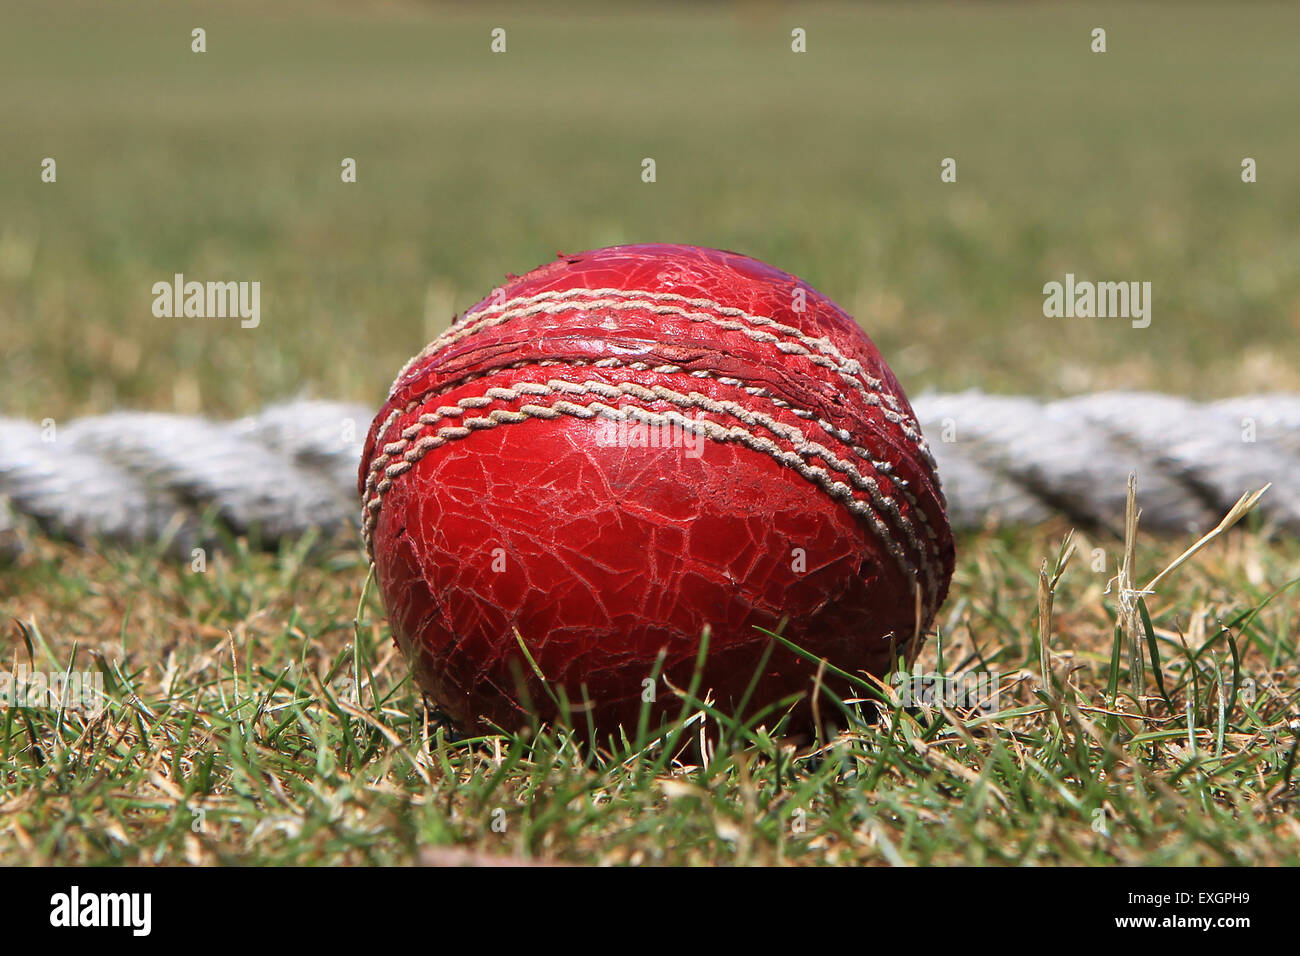 Cricket - Kent Cricket League Division IV 1st XI - Faversham Cricket Club v Cowdrey Cricket Club Stock Photo